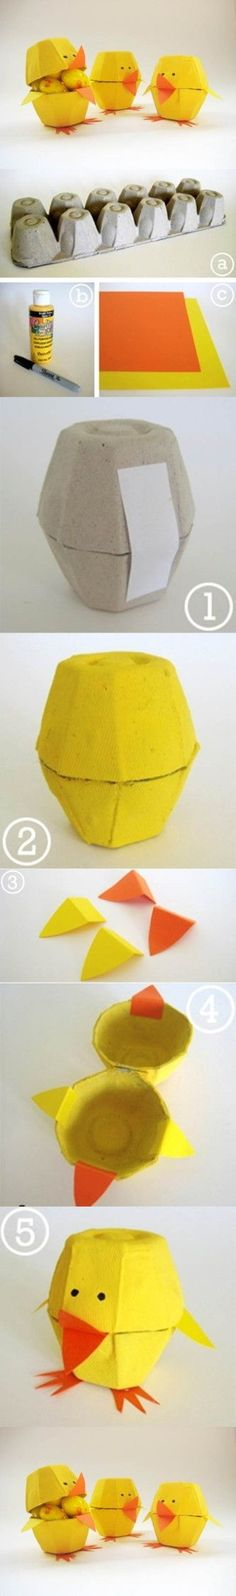 Egg Carton Craft - Lovely Chicks 2